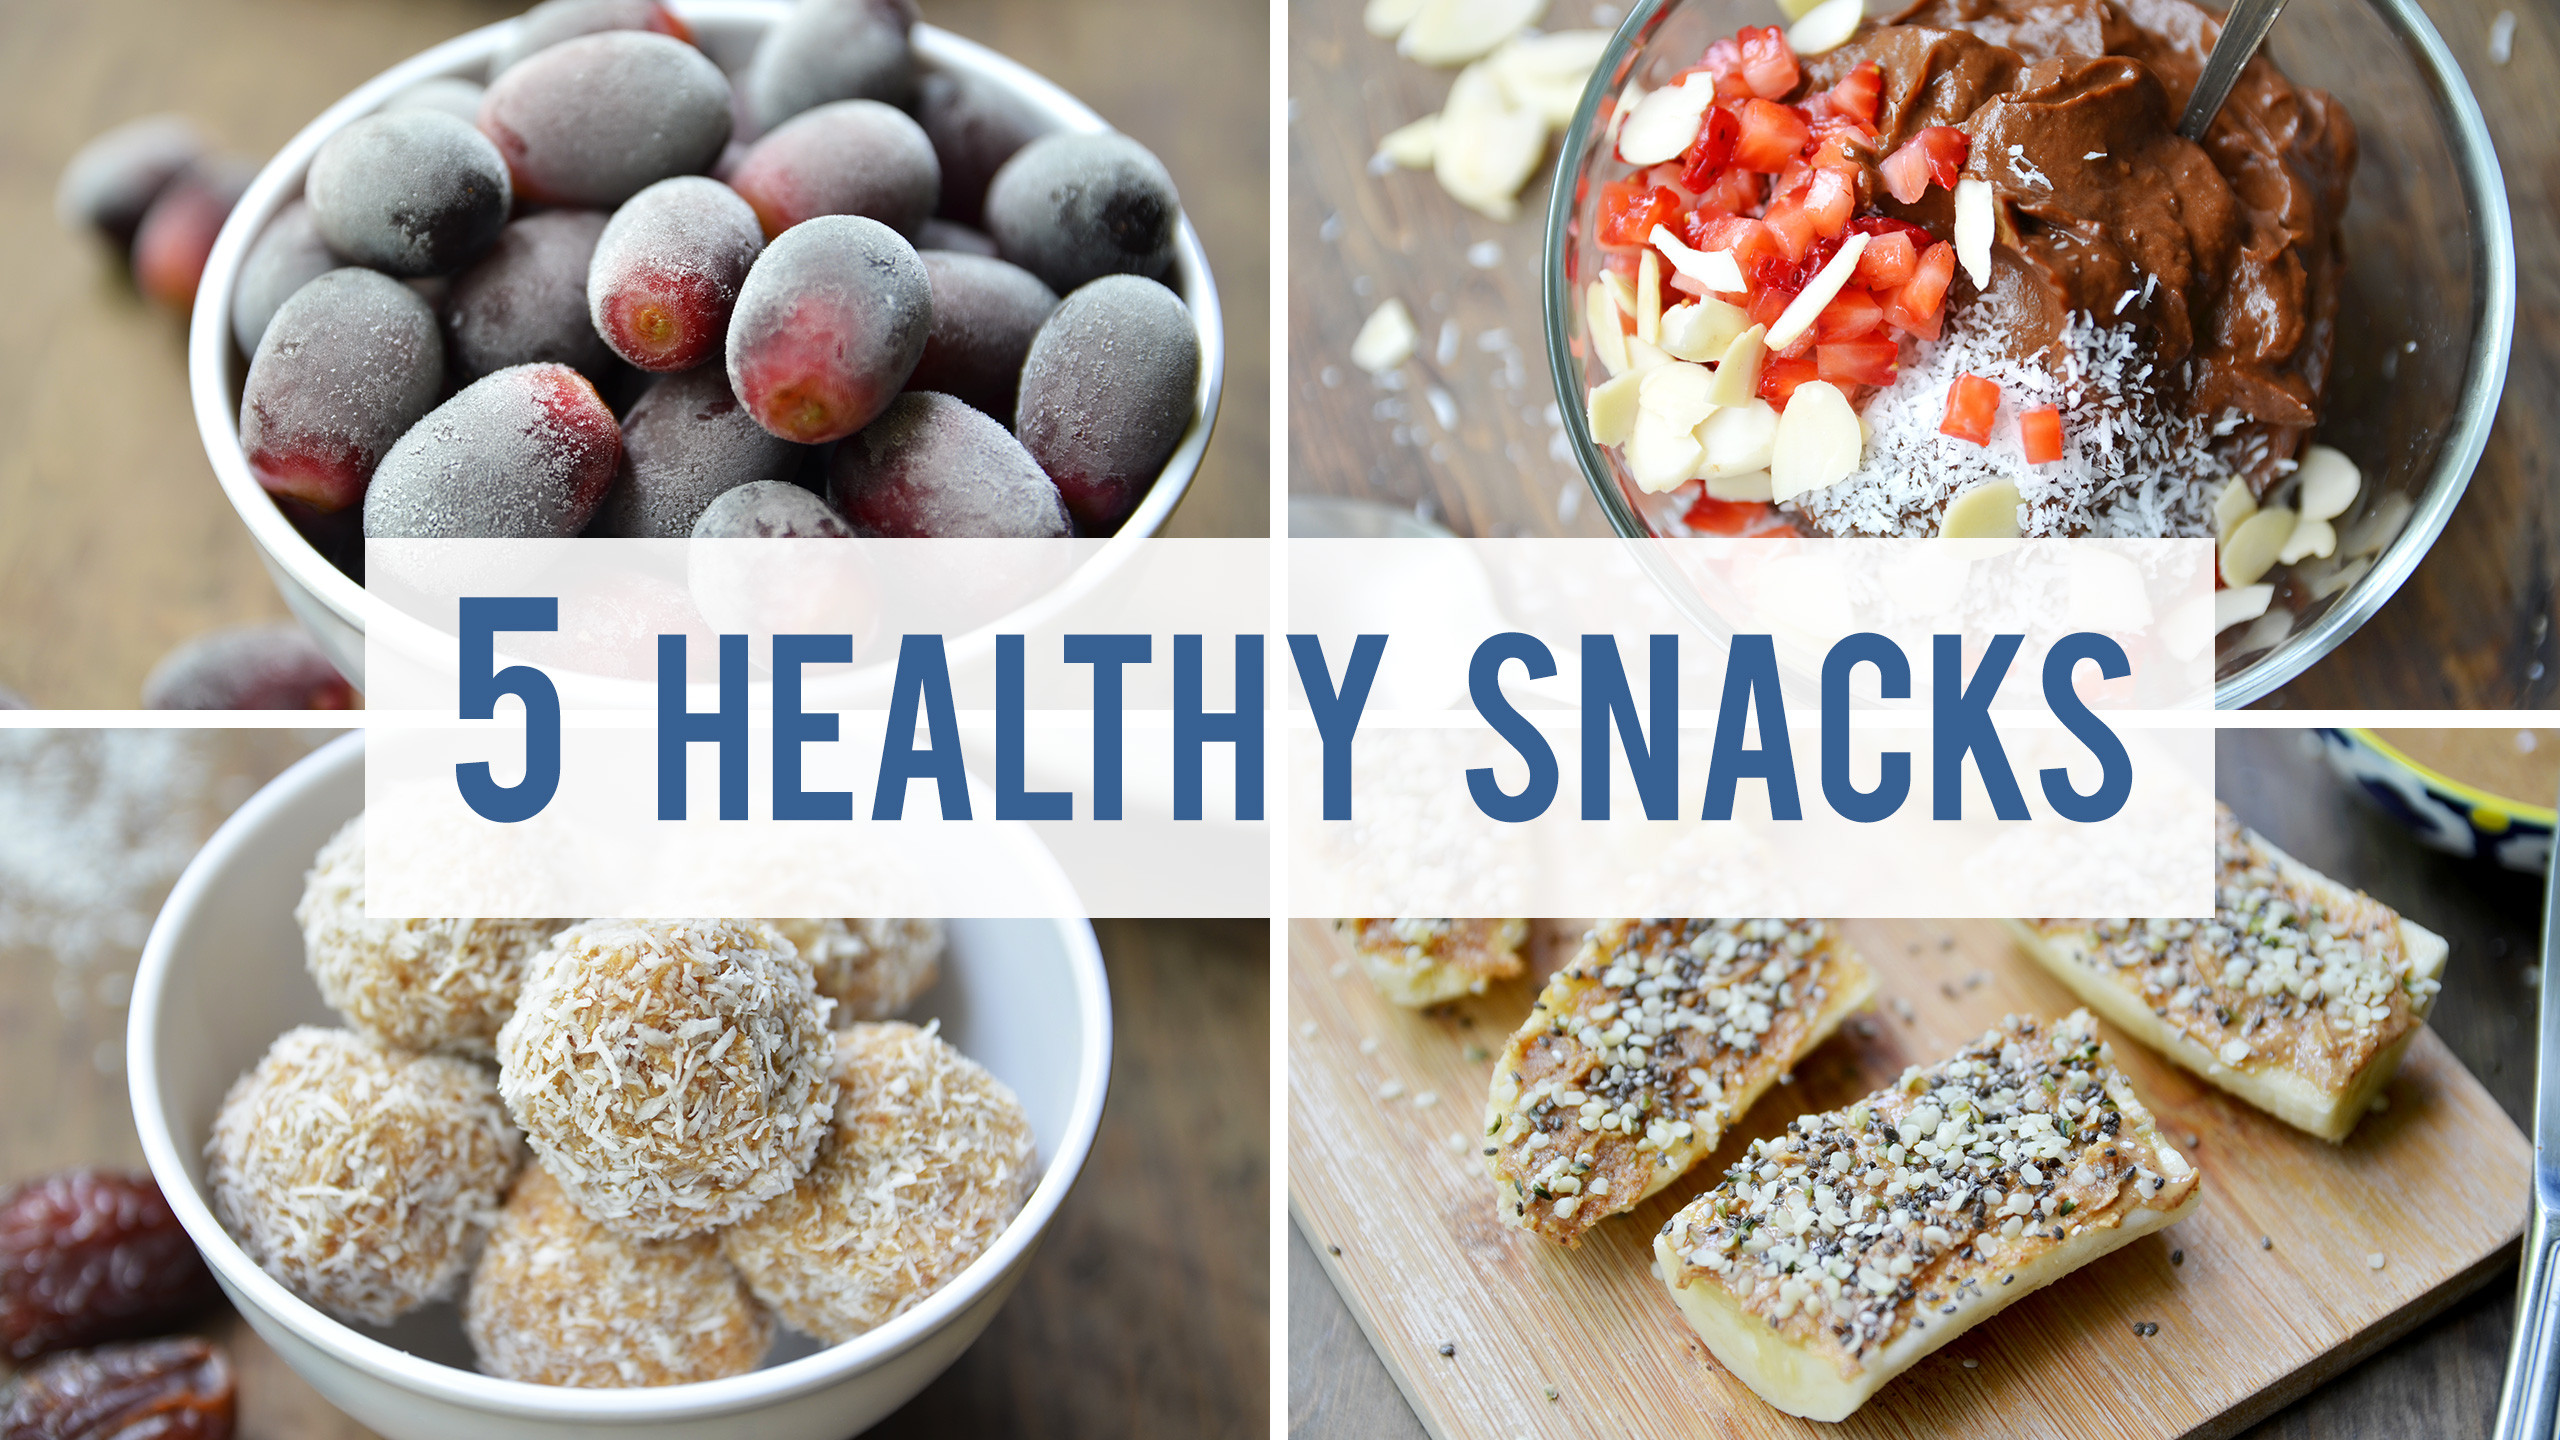 Healthy Quick Snacks Recipes  5 Healthy Snacks For Your Sweet Tooth Fablunch